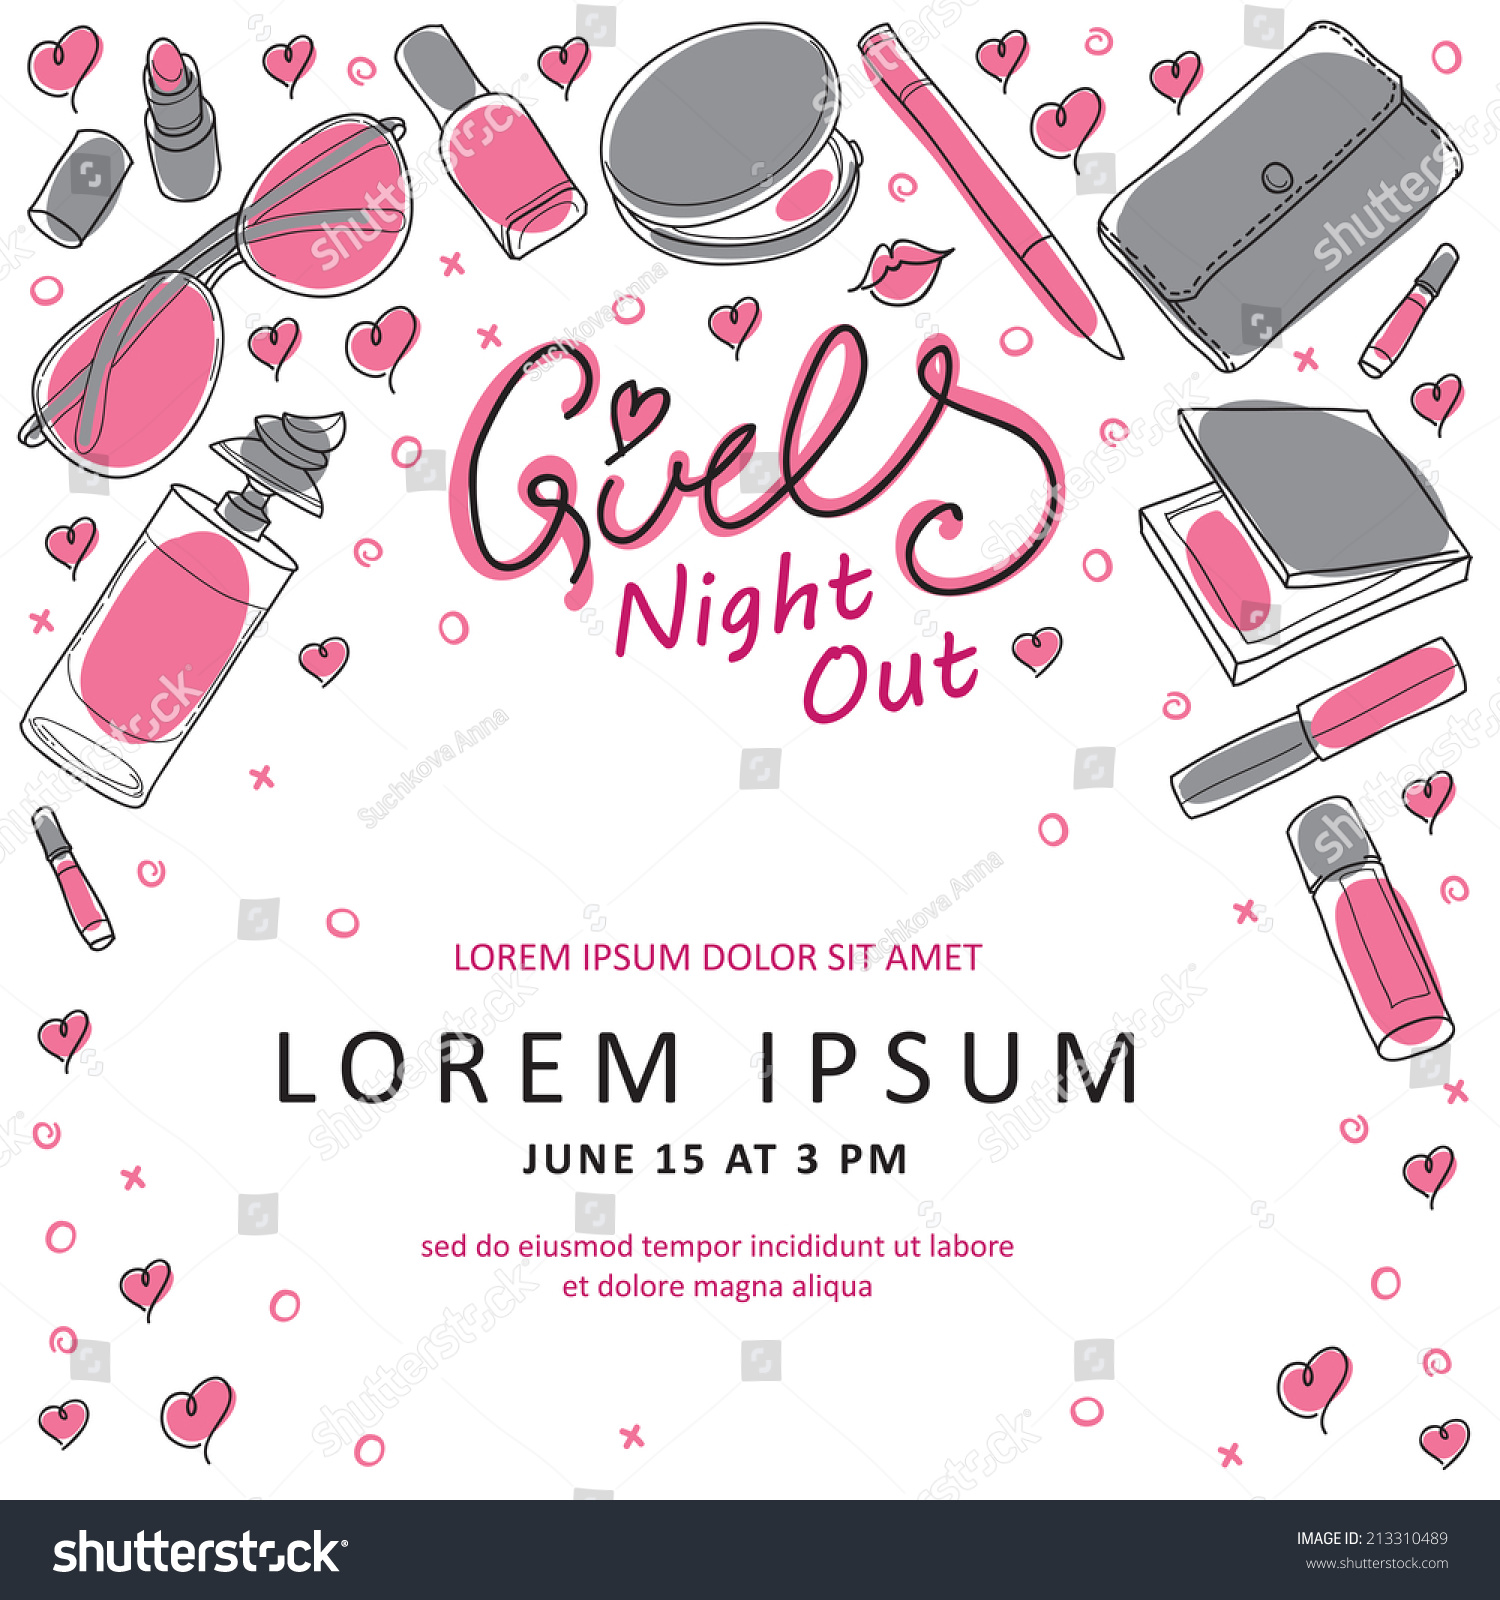 Girls Night Out Party Invitation Card Stock Vector 213310489 ...